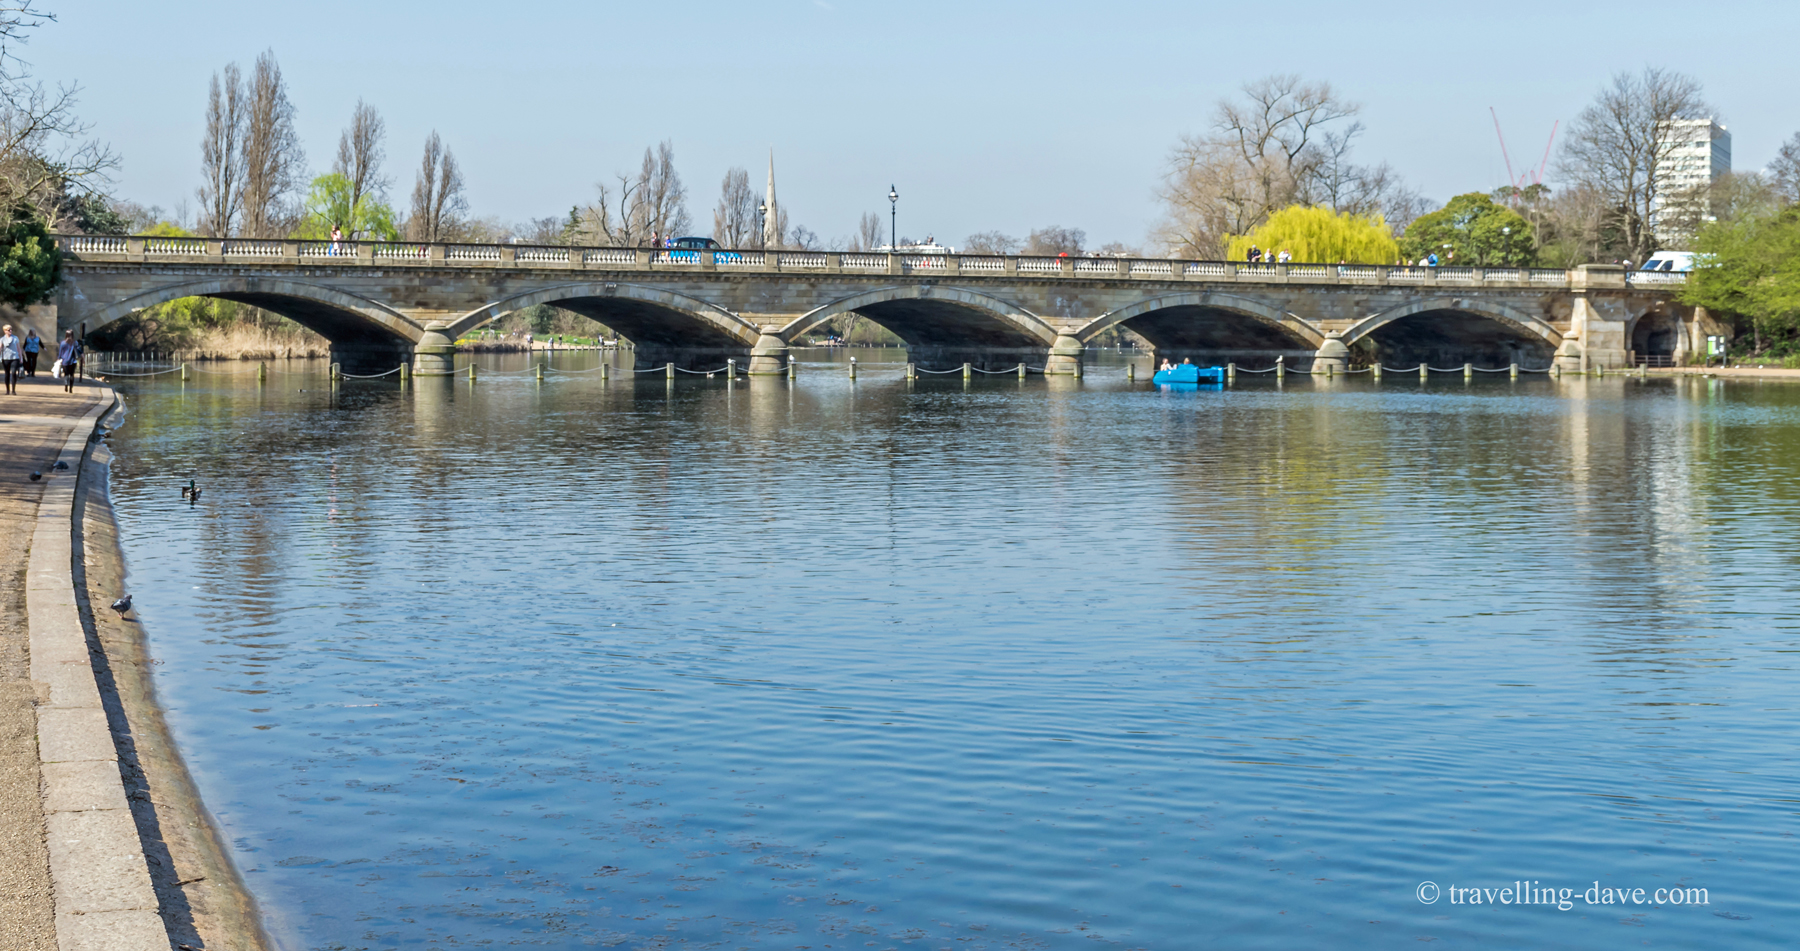 View of the Serpentine Bridge in London's Hyde Park